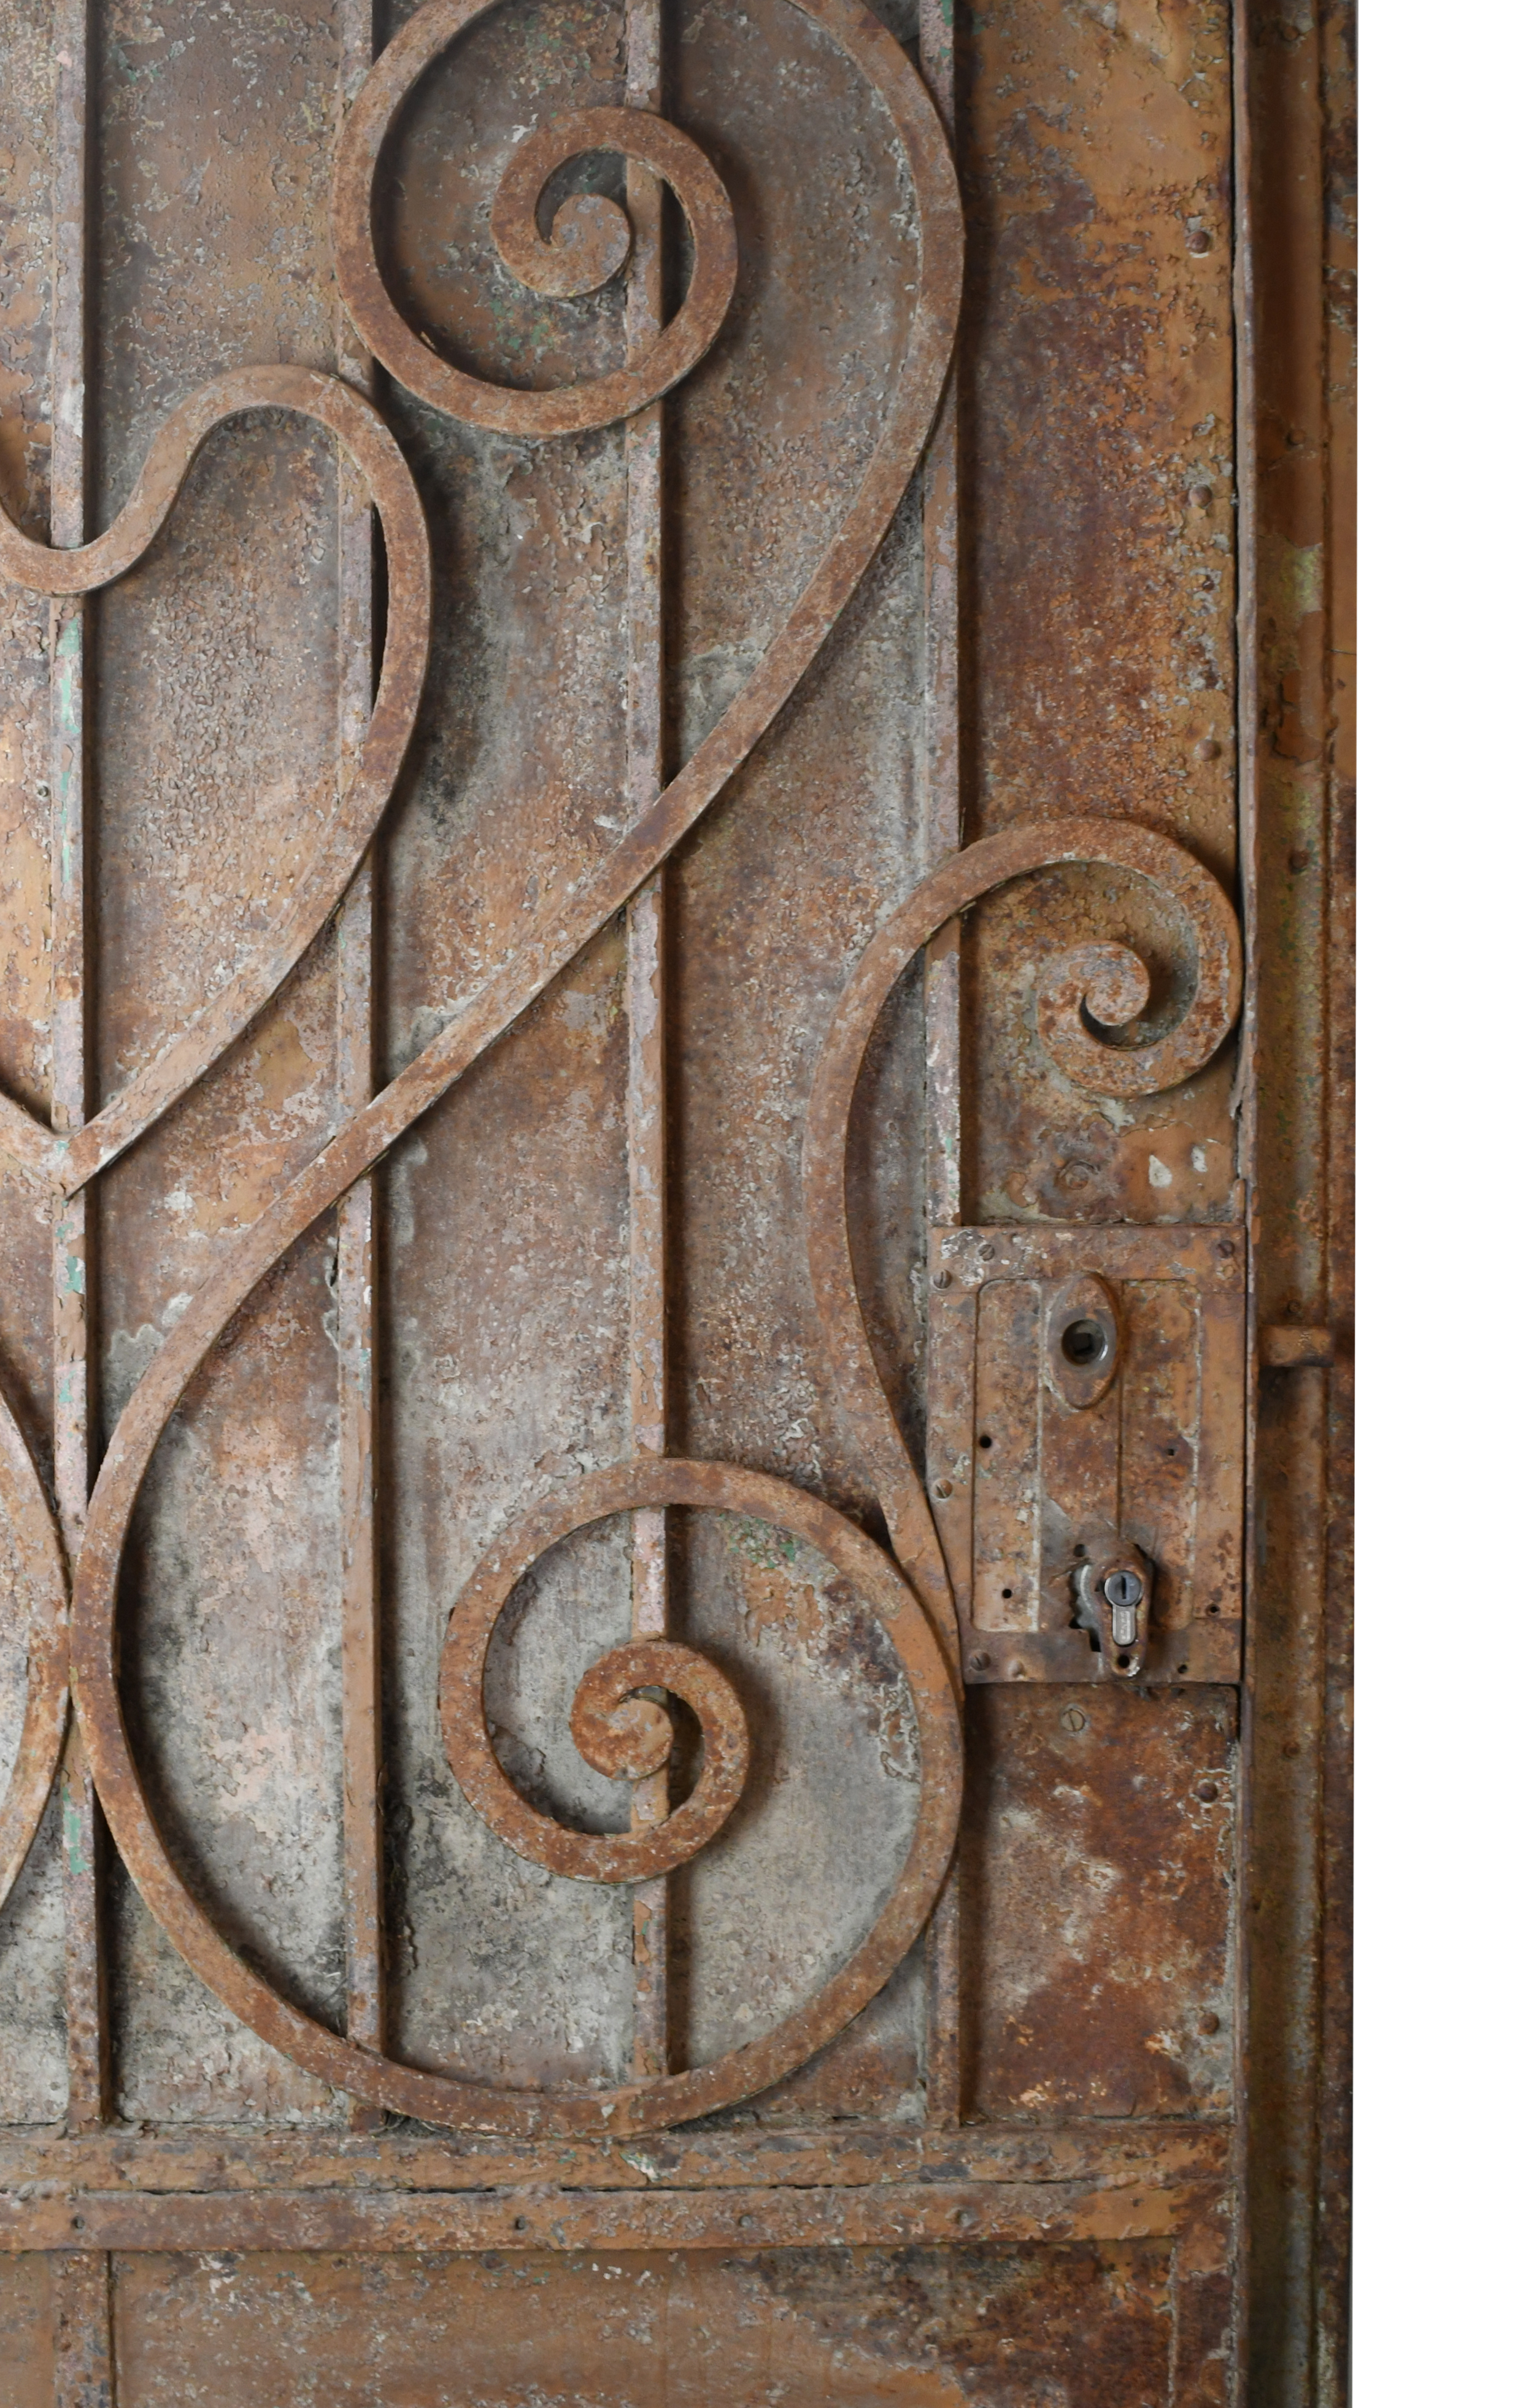 47498-Arched-iron-gate-detail-17.jpg